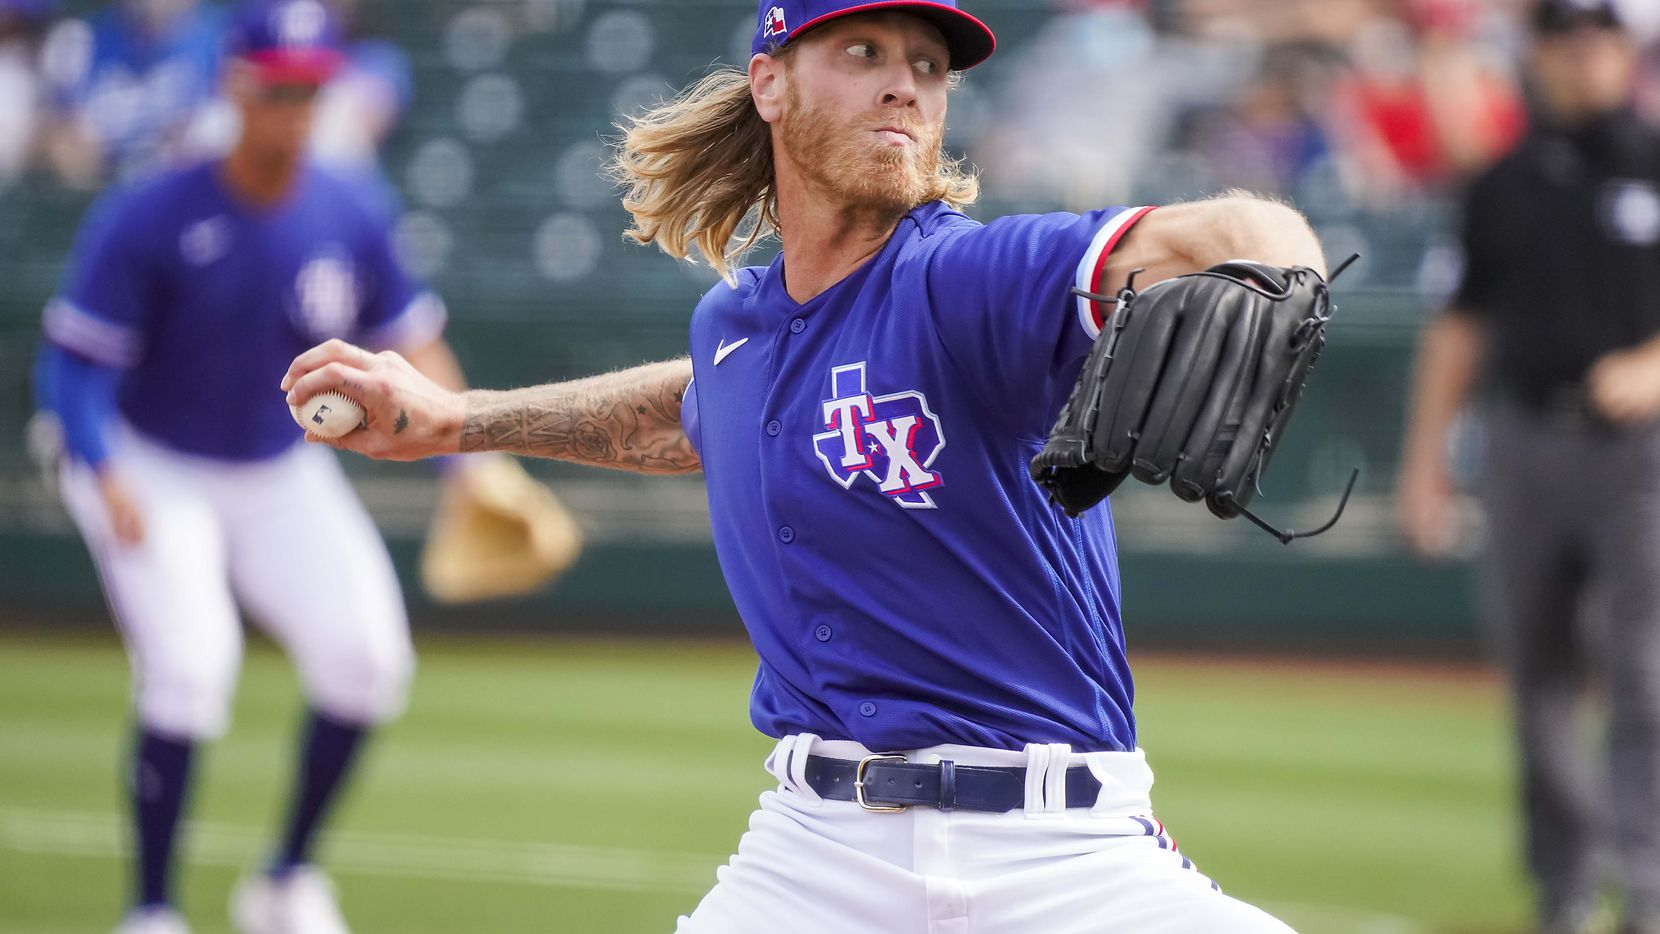 Texas Rangers pitcher Mike Foltynewicz delivers during the second inning of a spring training game against the Los Angeles Dodgers at Surprise Stadium on Sunday, March 7, 2021, in Surprise, Ariz.